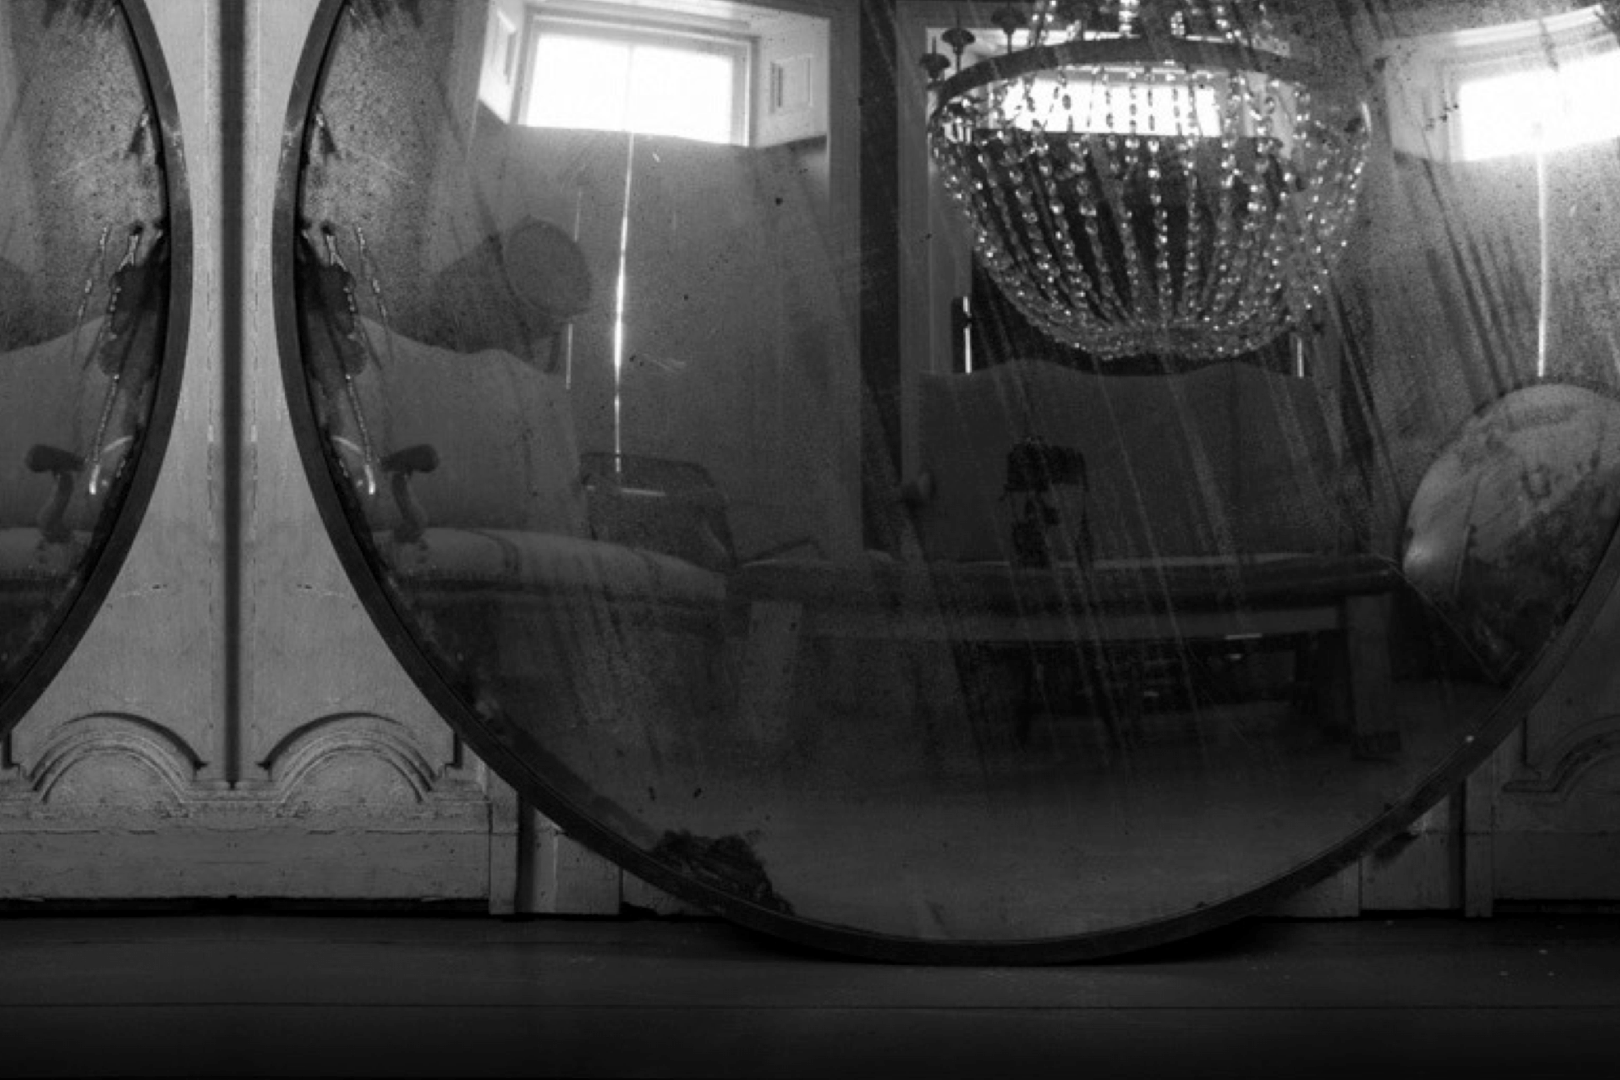 Stephan Mathieu - Nachtstücke, black-and-white mirror reflecting domestic interior